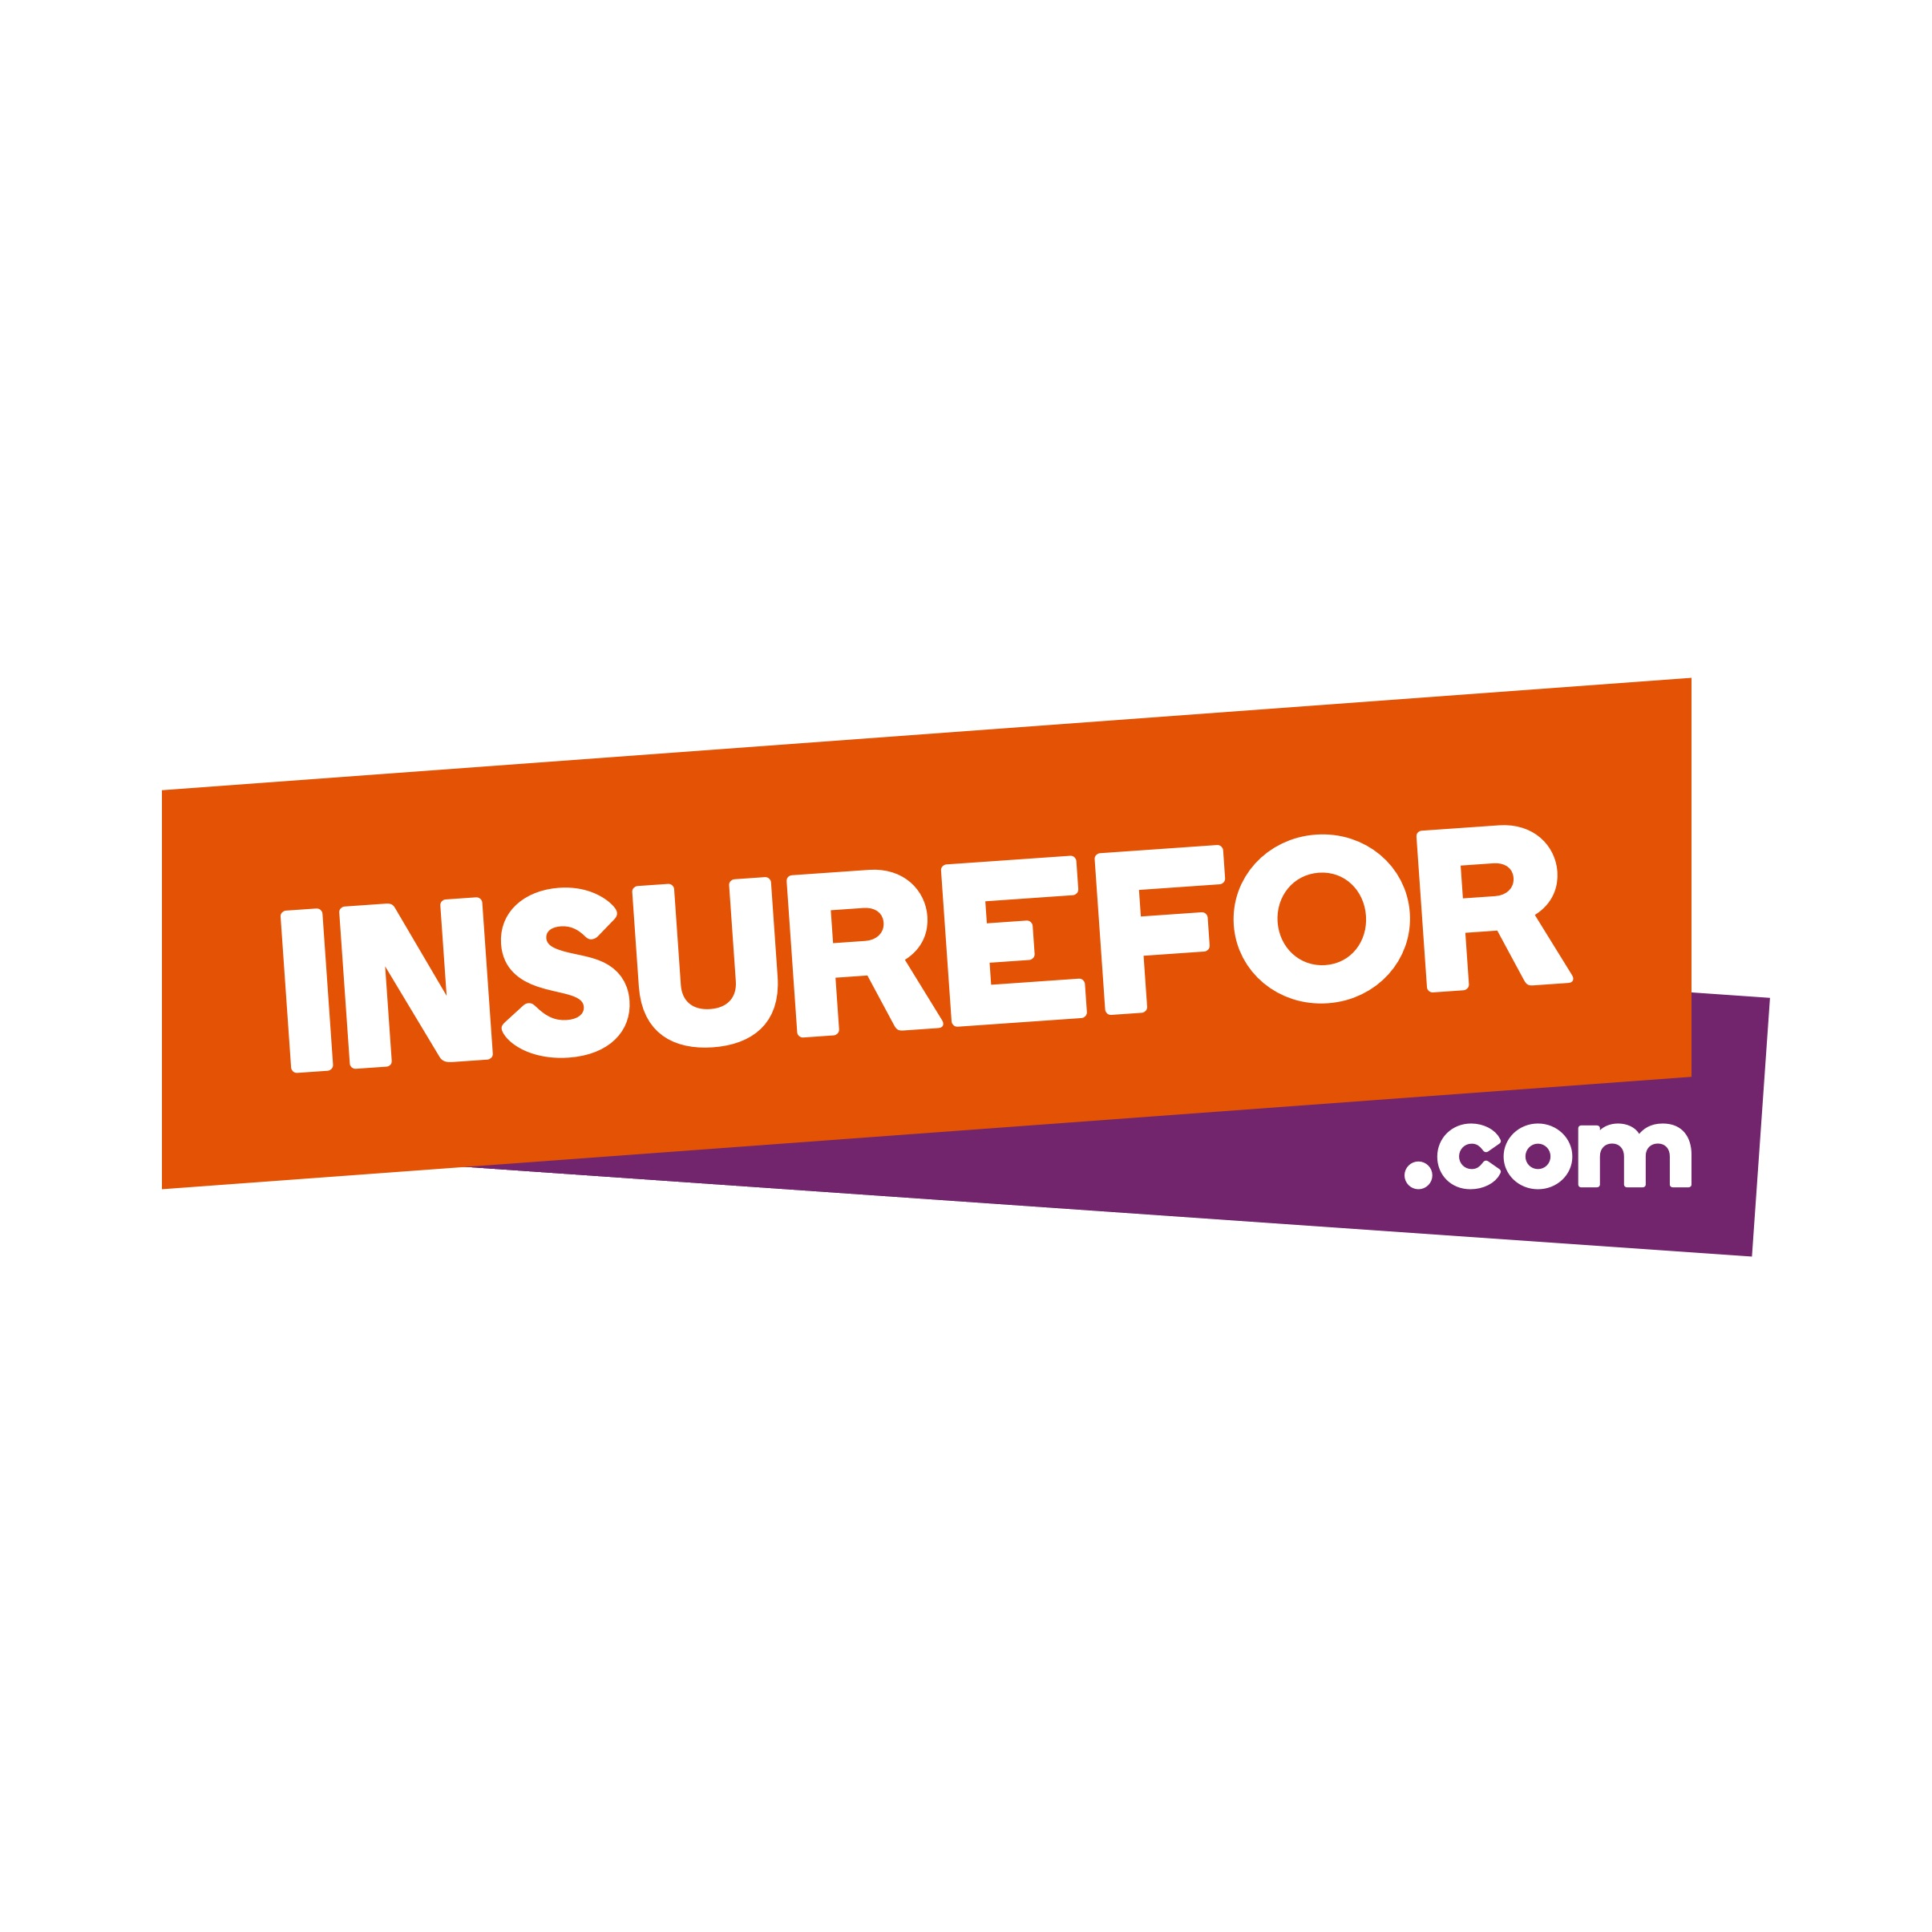 Insurefor Logo by Casper Creative